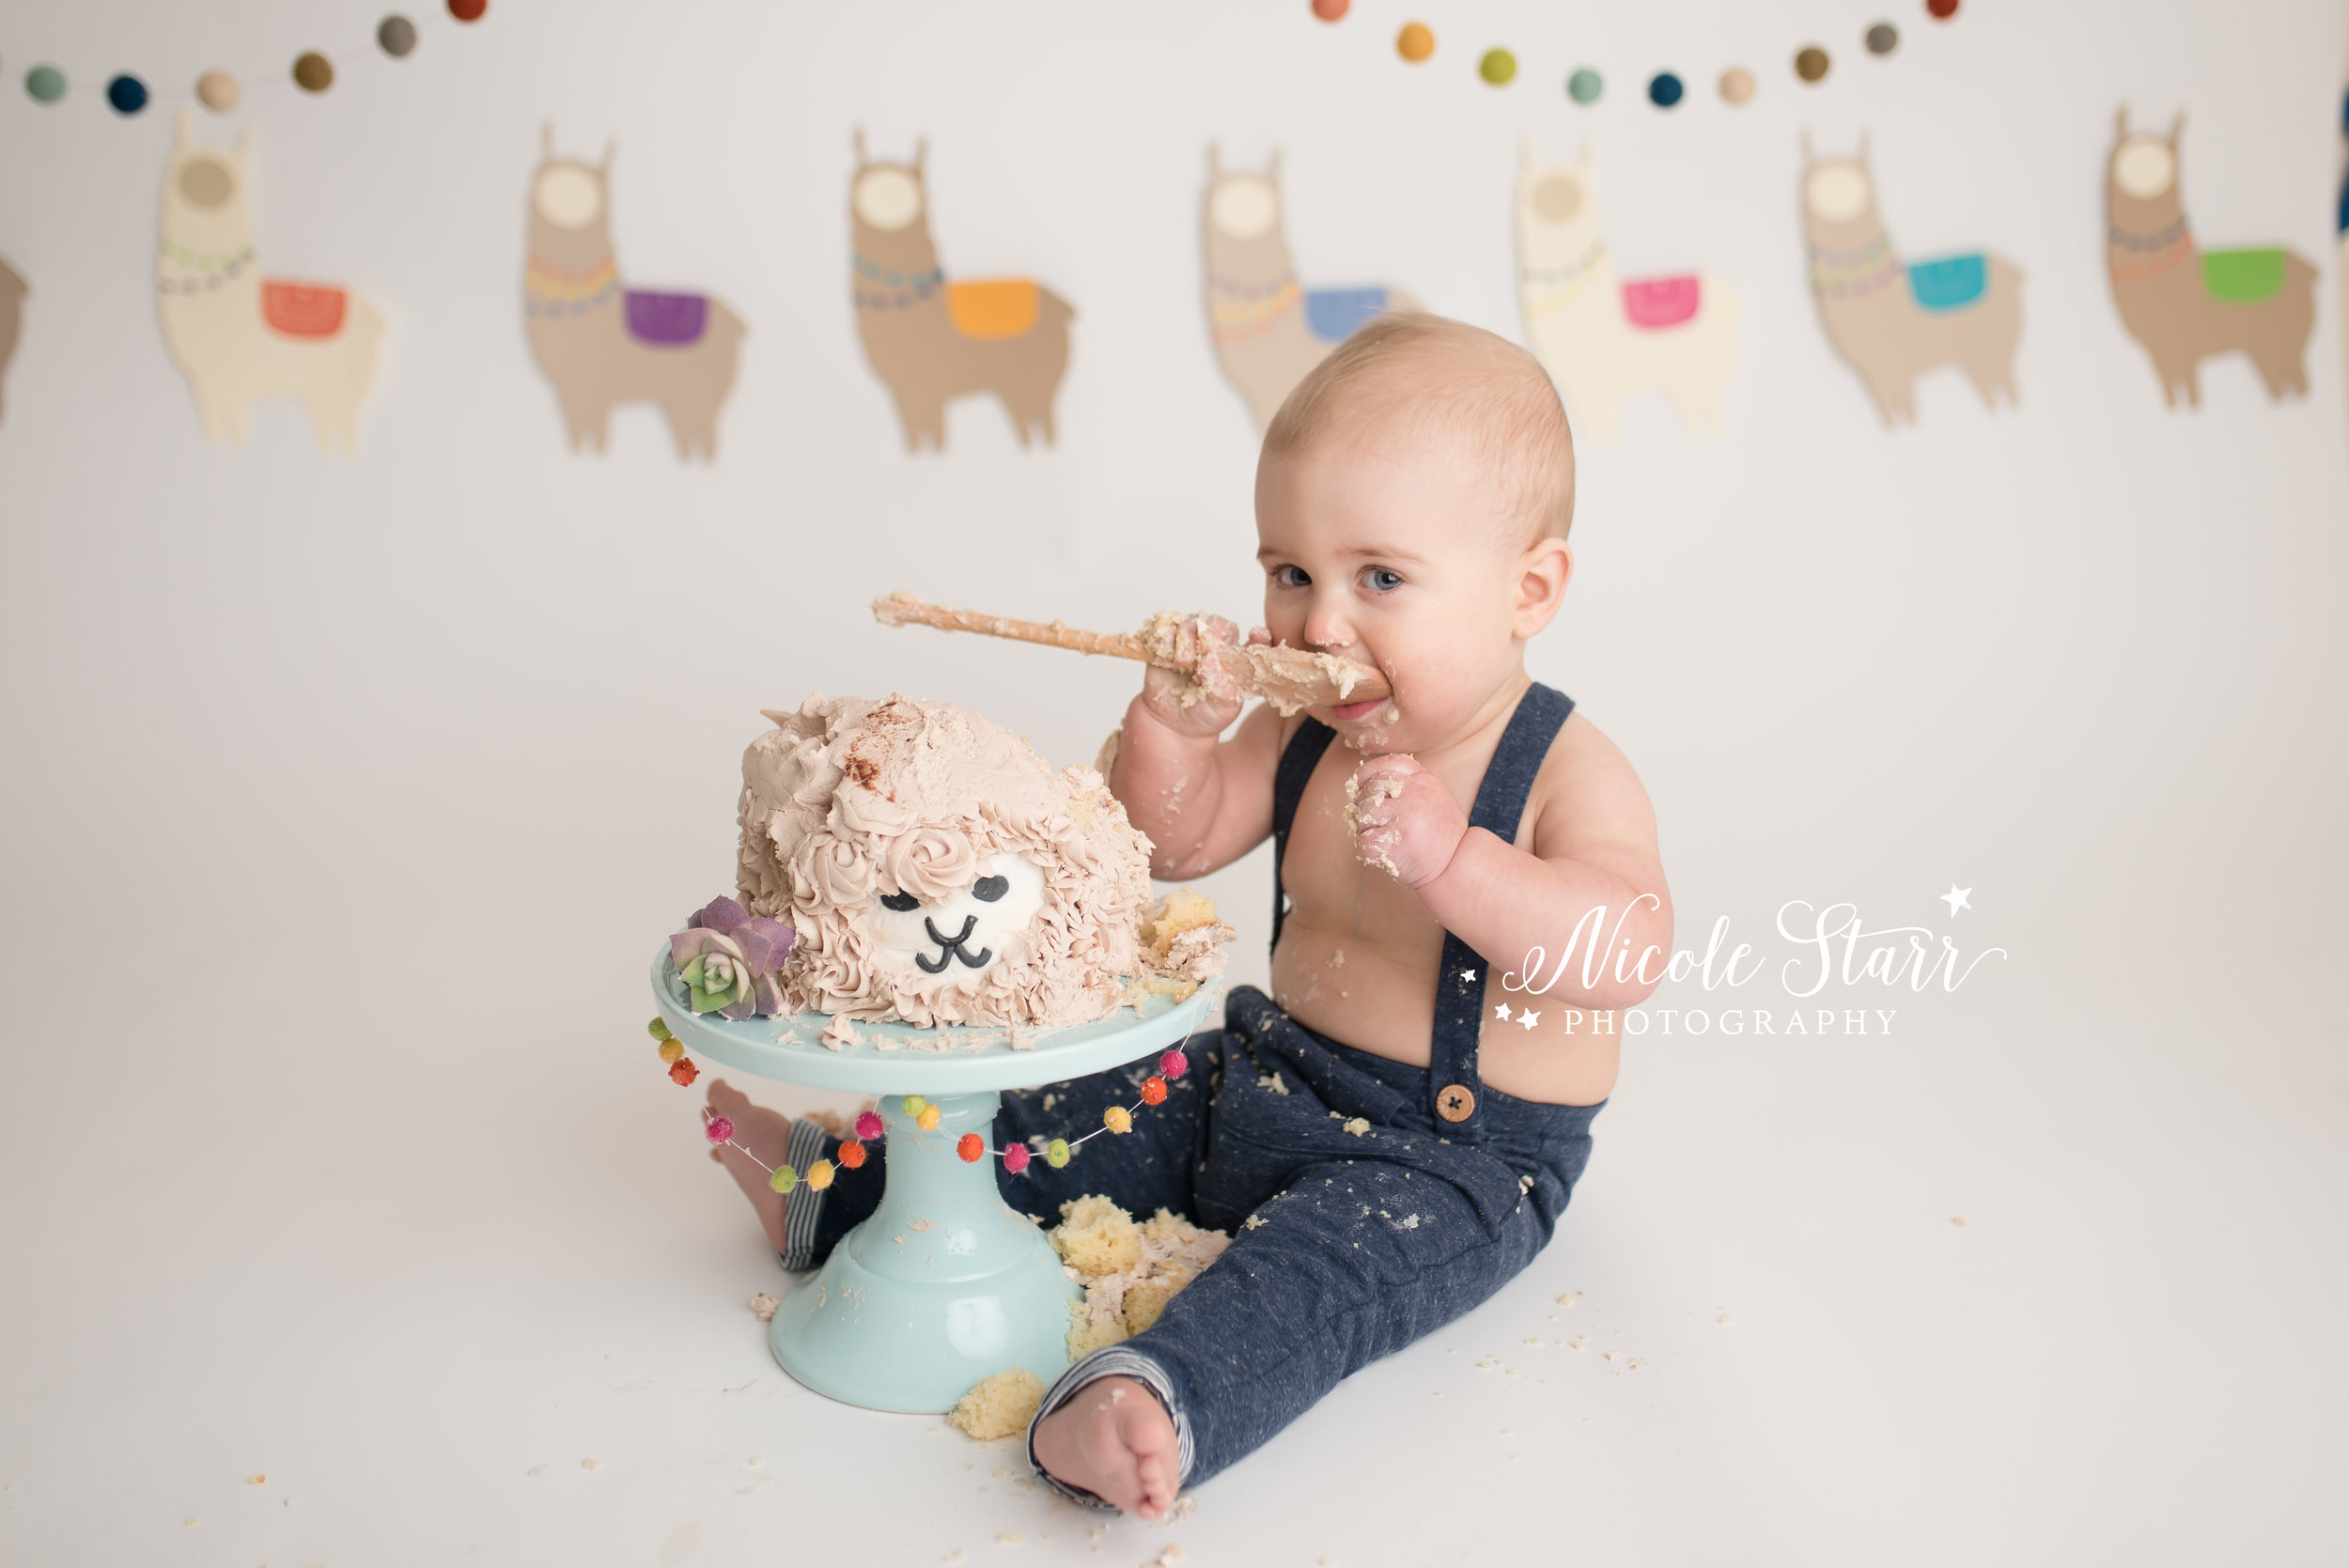 llama cake smash, nicole starr photography, saratoga springs cake smash photographer-14.jpg